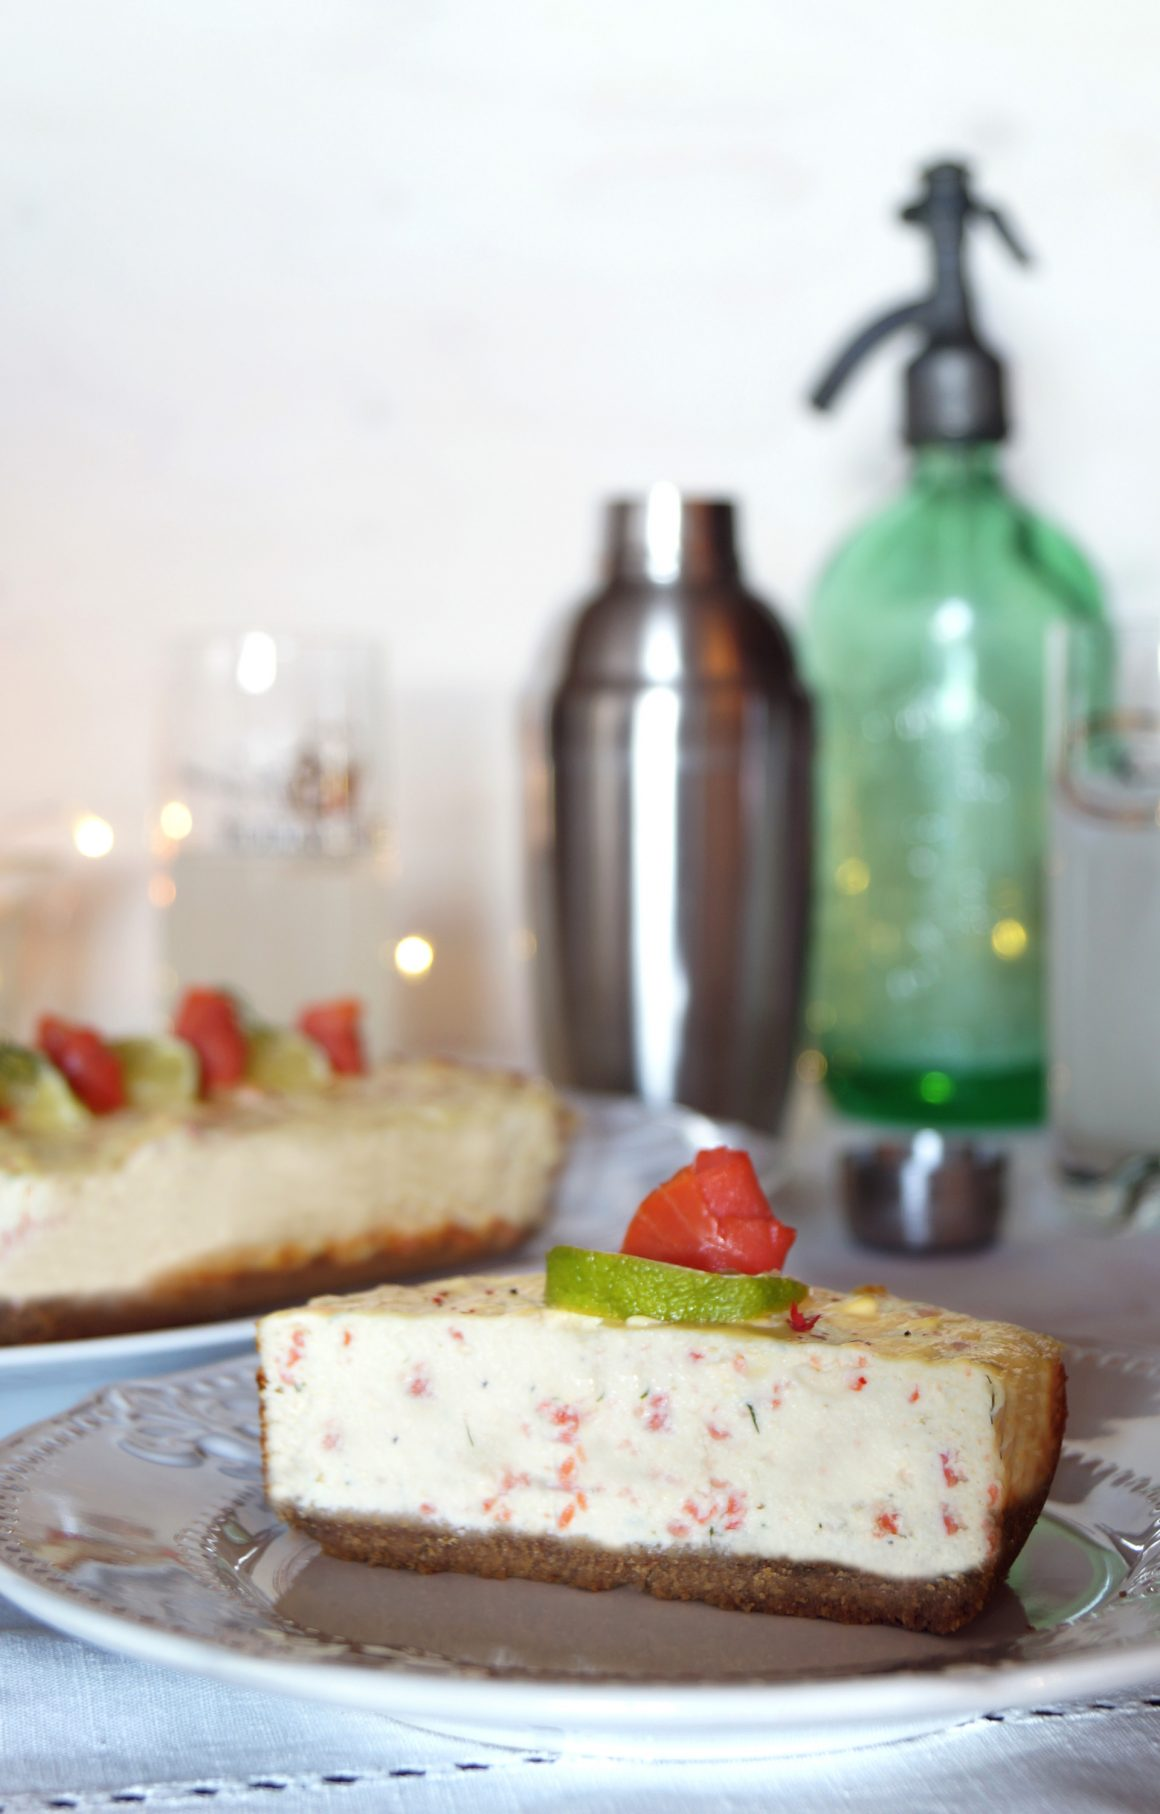 cheesecake-salmone affumicato